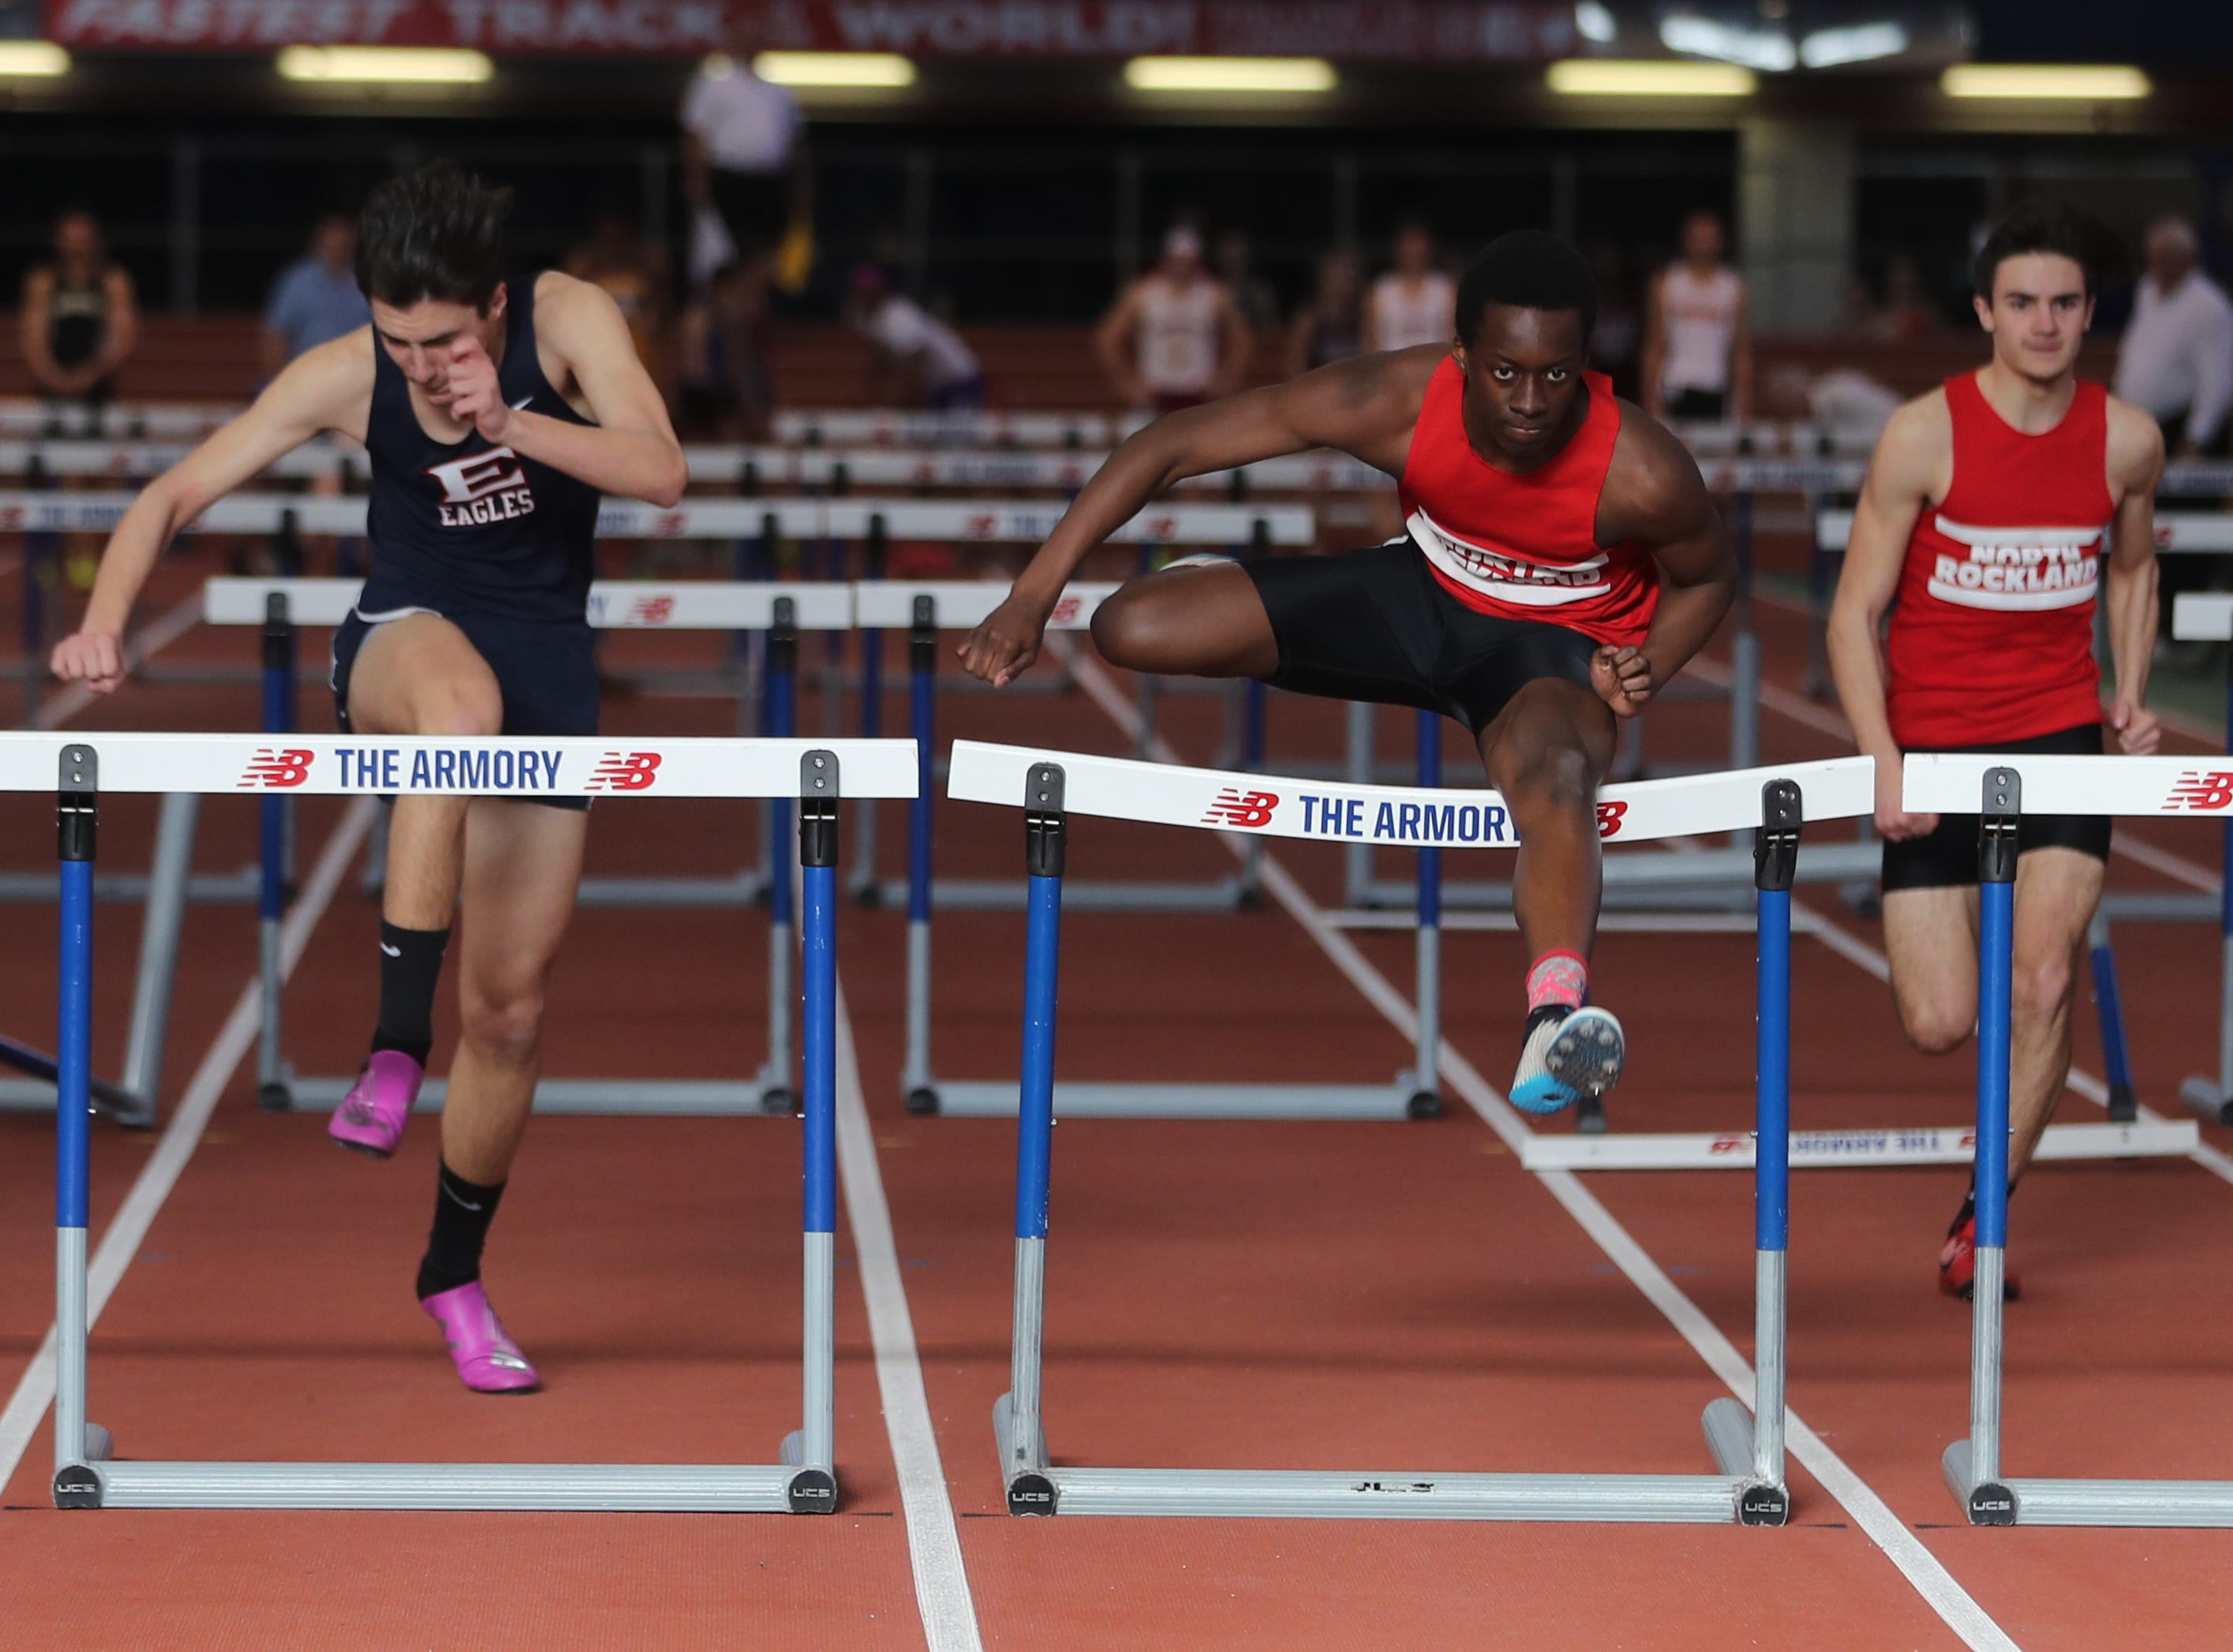 Emmanuel Joseph of North Rockland won his heat in the 55 meter hurdles during the Section 1 New York State Track and Field State Qualifier at the New Balance Armory in Manhattan Feb. 17, 2019.